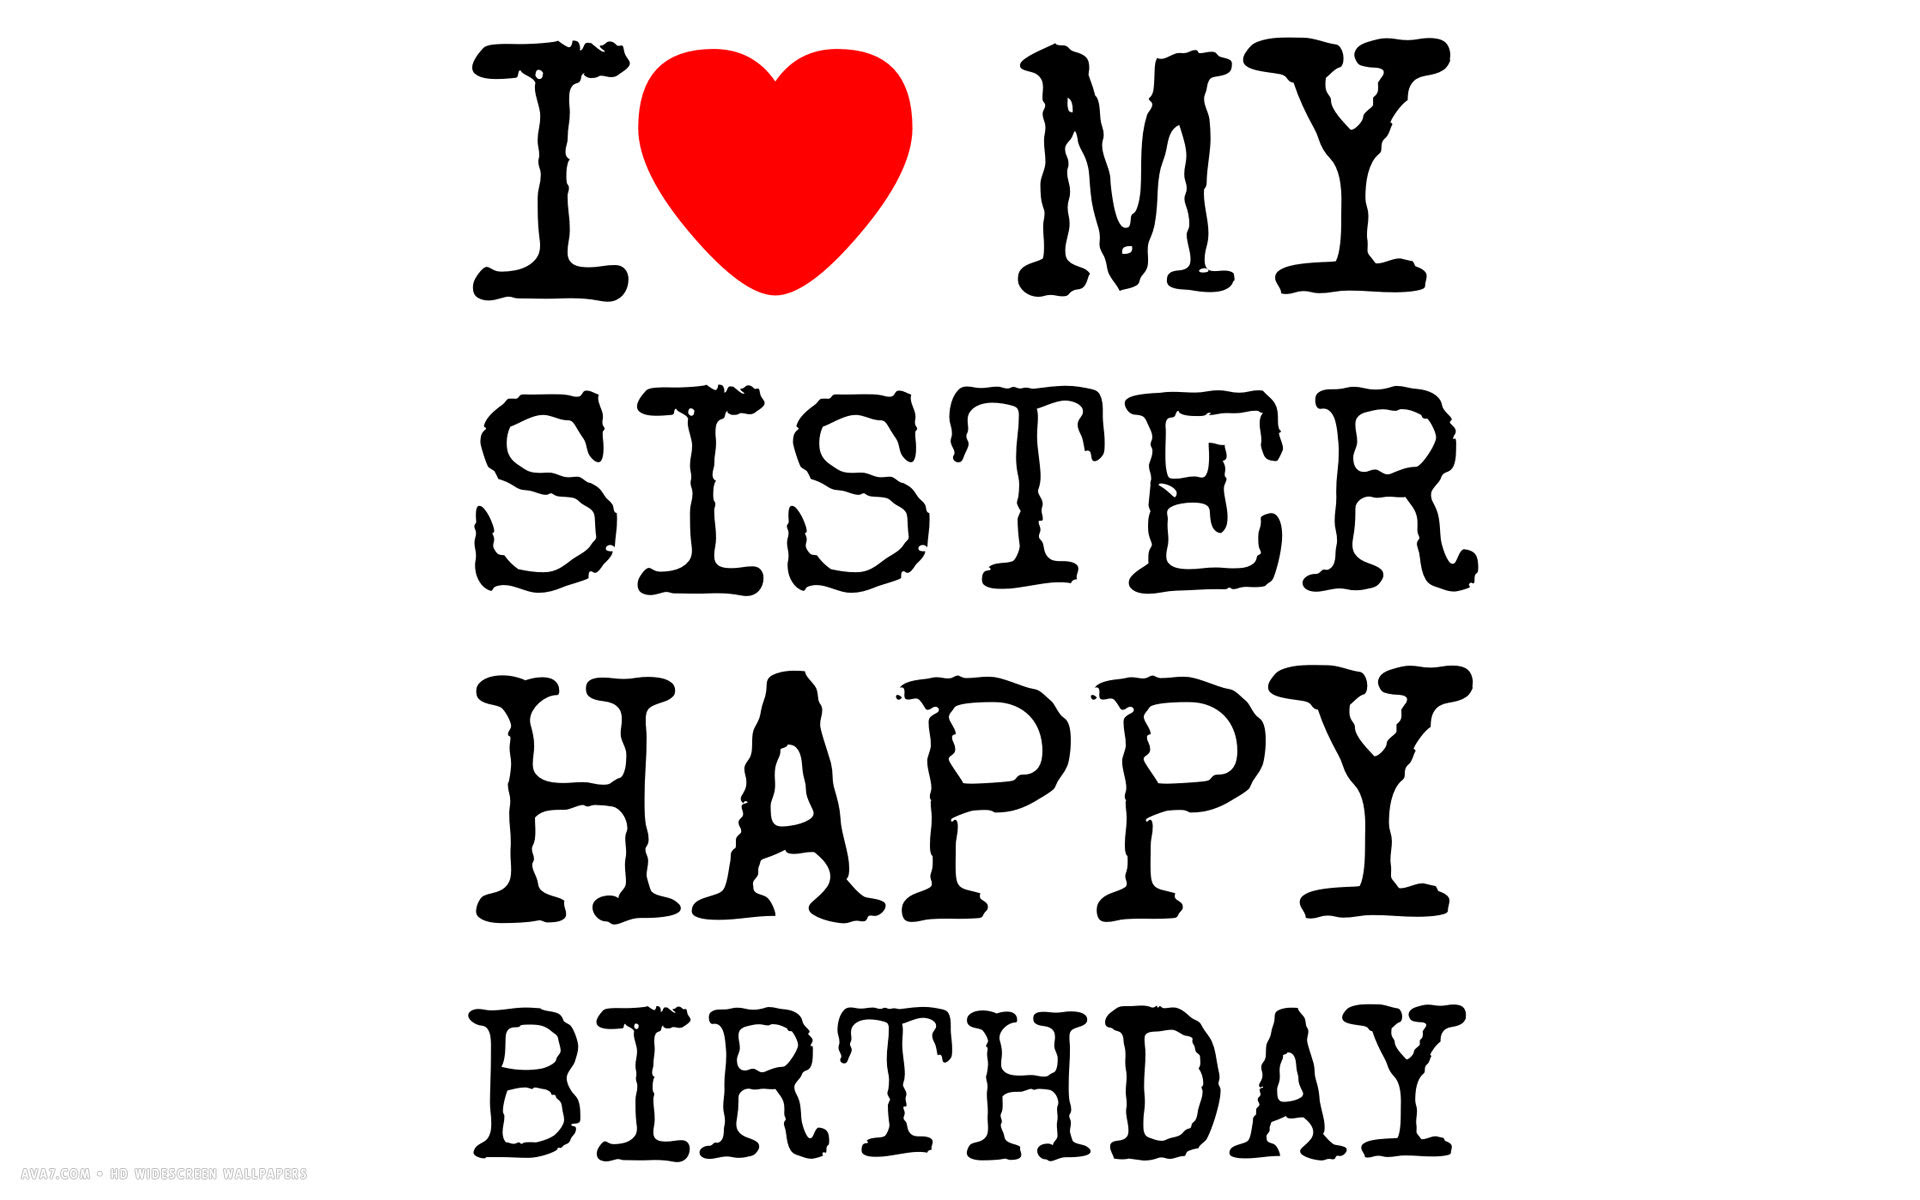 Happy Birthday I Love My Sister Text Simple Hd Widescreen Wallpaper